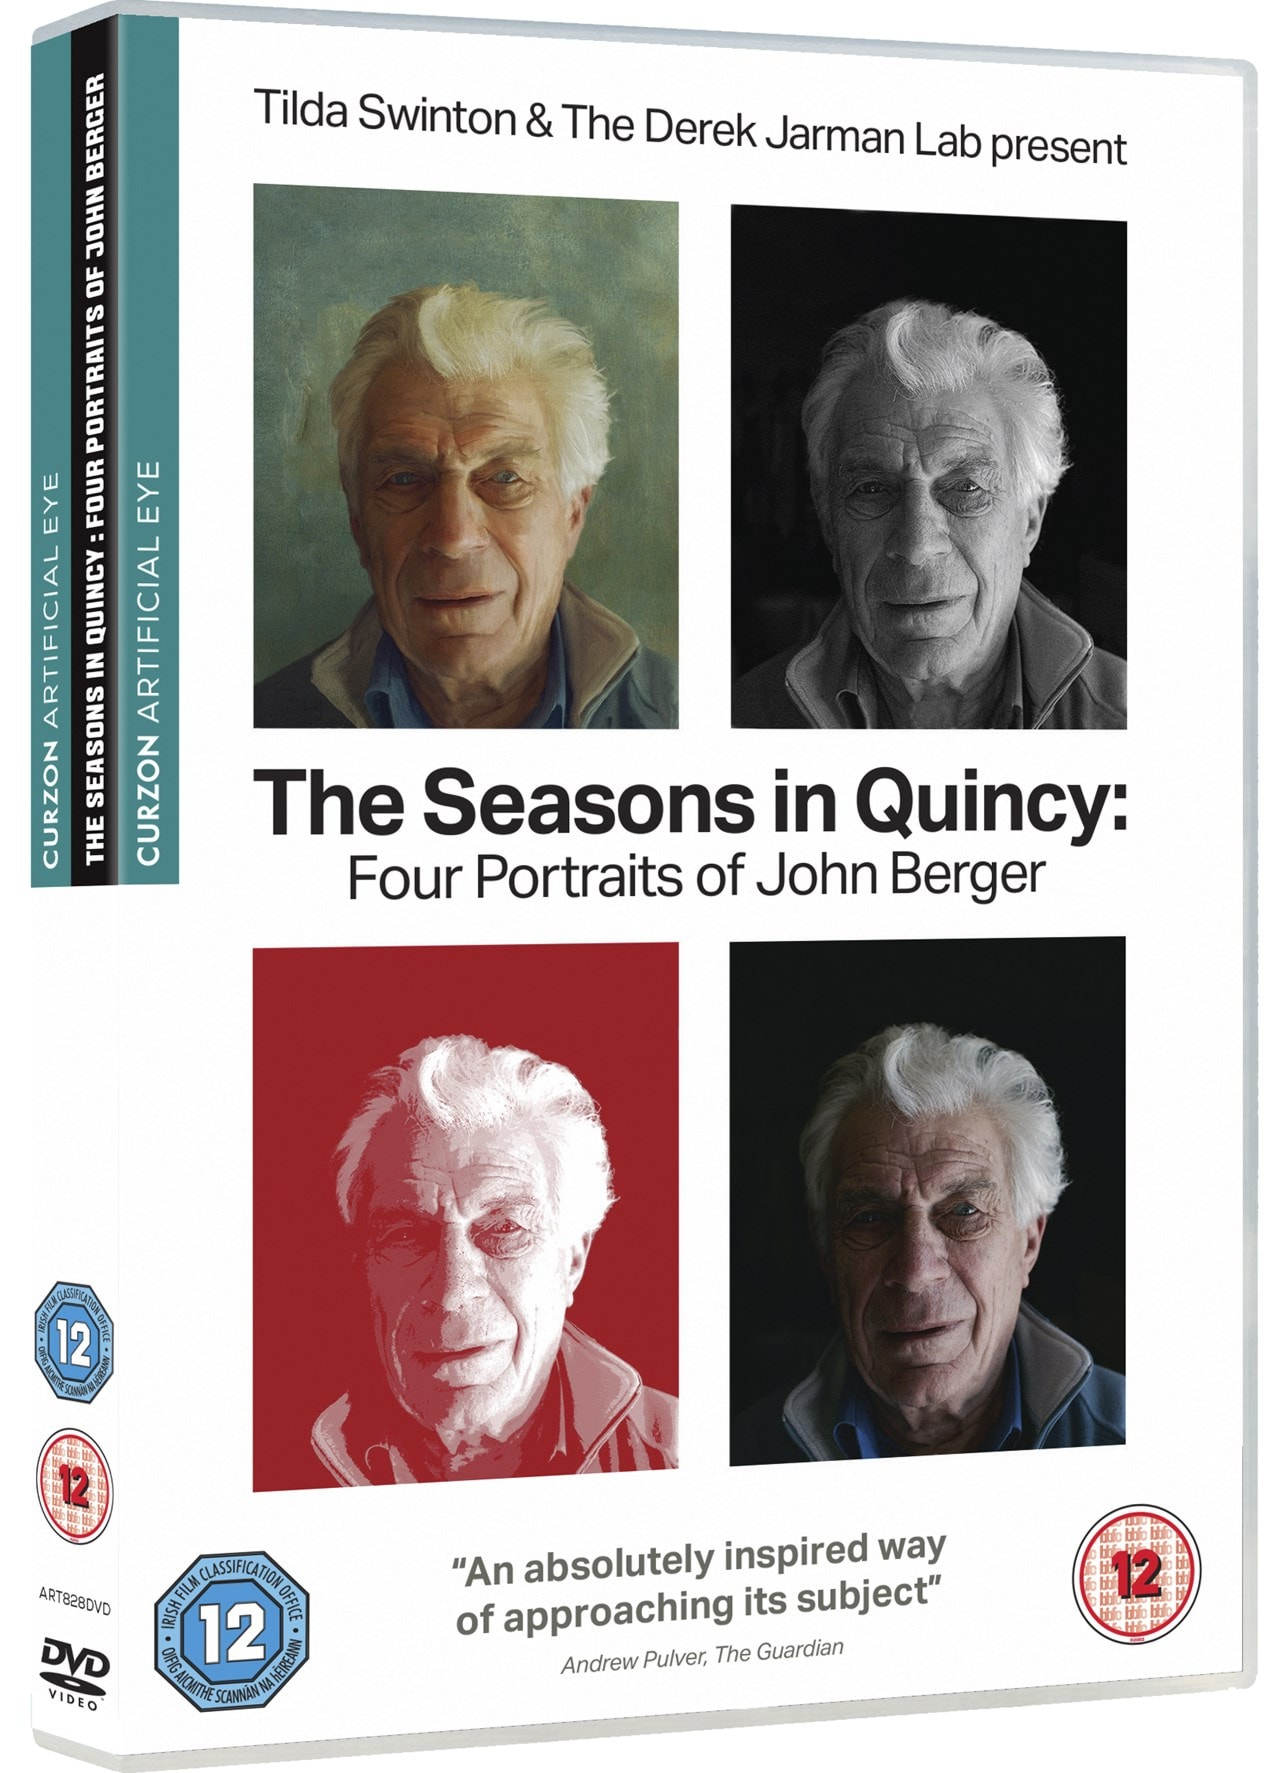 The Seasons in Quincy - Four Portraits of John Berger - 2